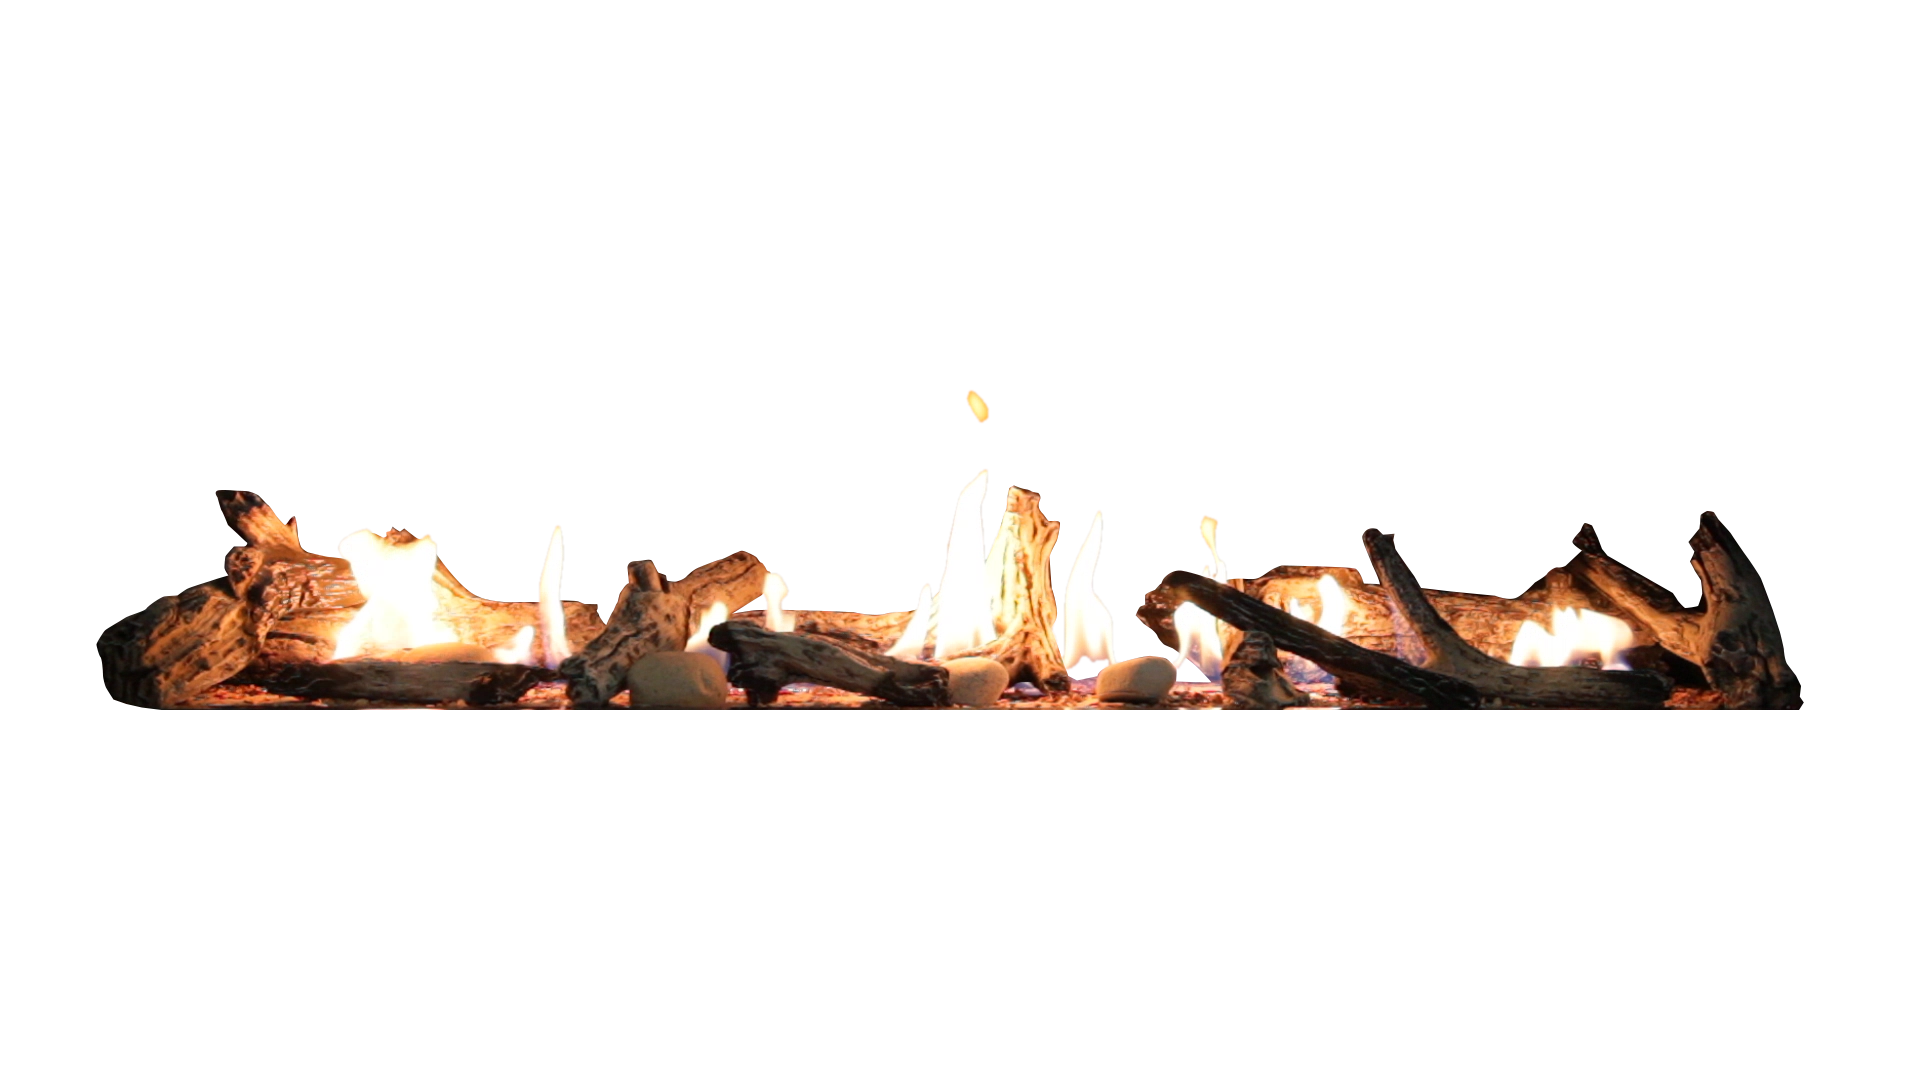 Fire png video. Index of napole digital